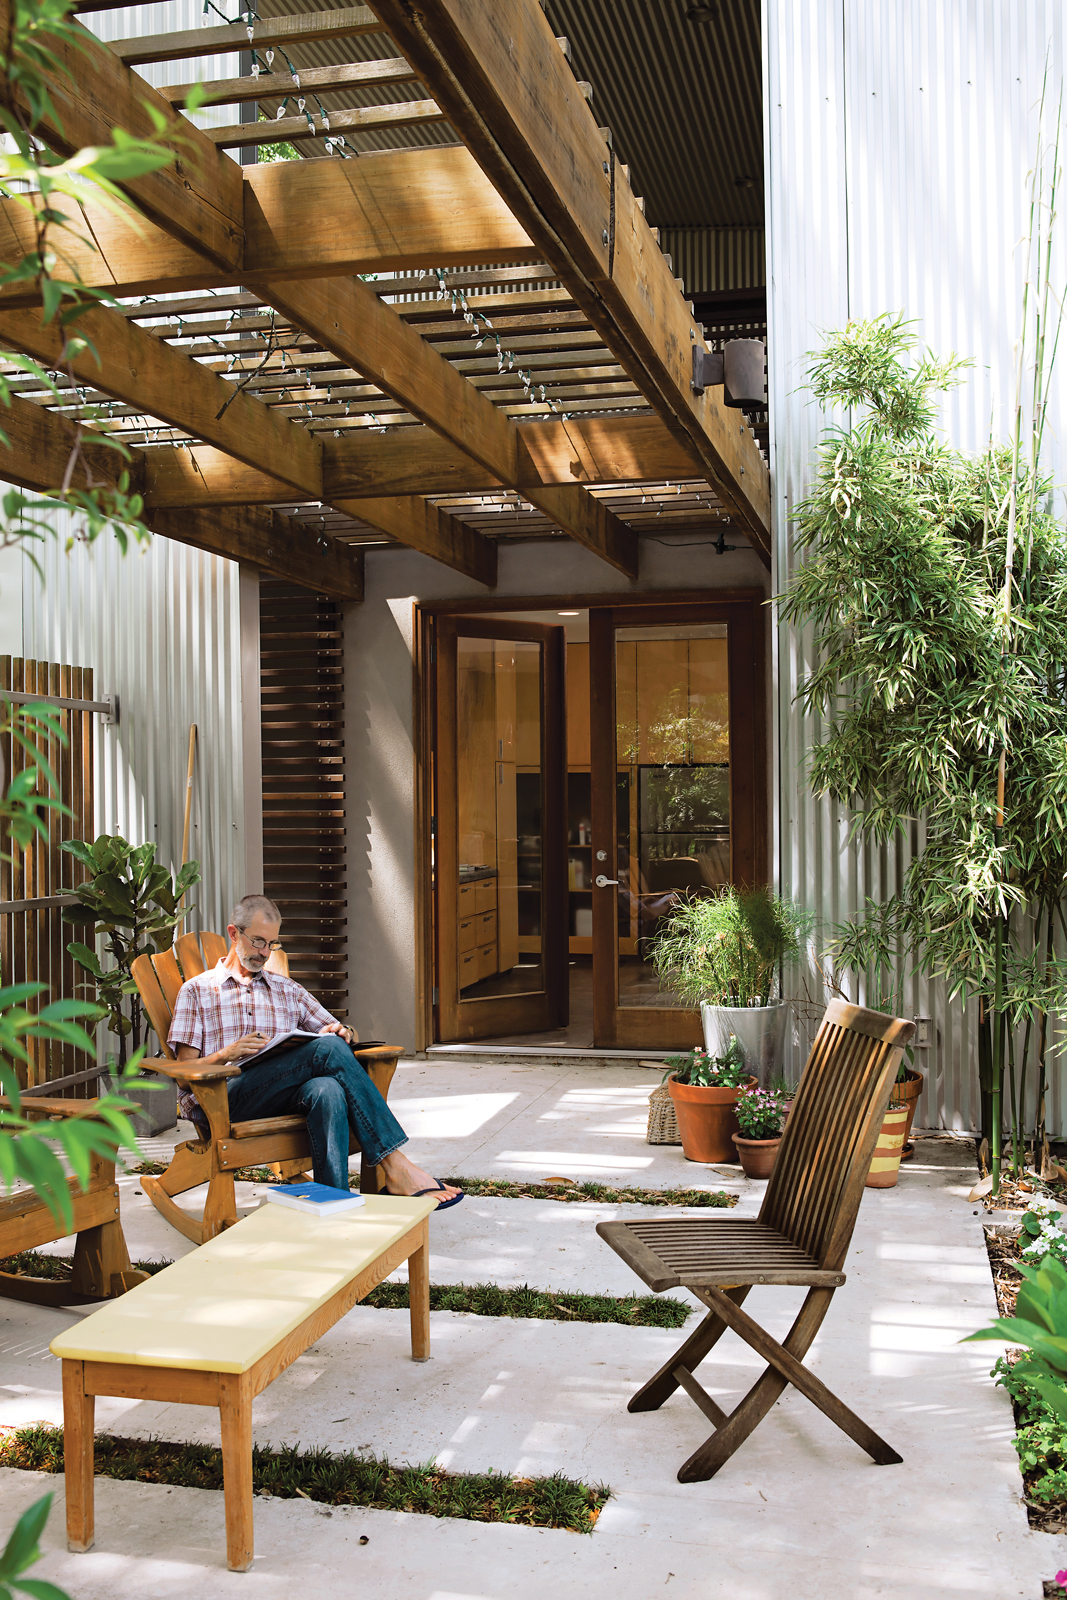 Catovic Hughes's design for the Morelands is all about embracing the outdoors. Rick spends as much time on the patio as he can. The undulation of the aluminum cladding makes a regular, rhythmic backdrop for the yards-high bamboo he lovingly tends.